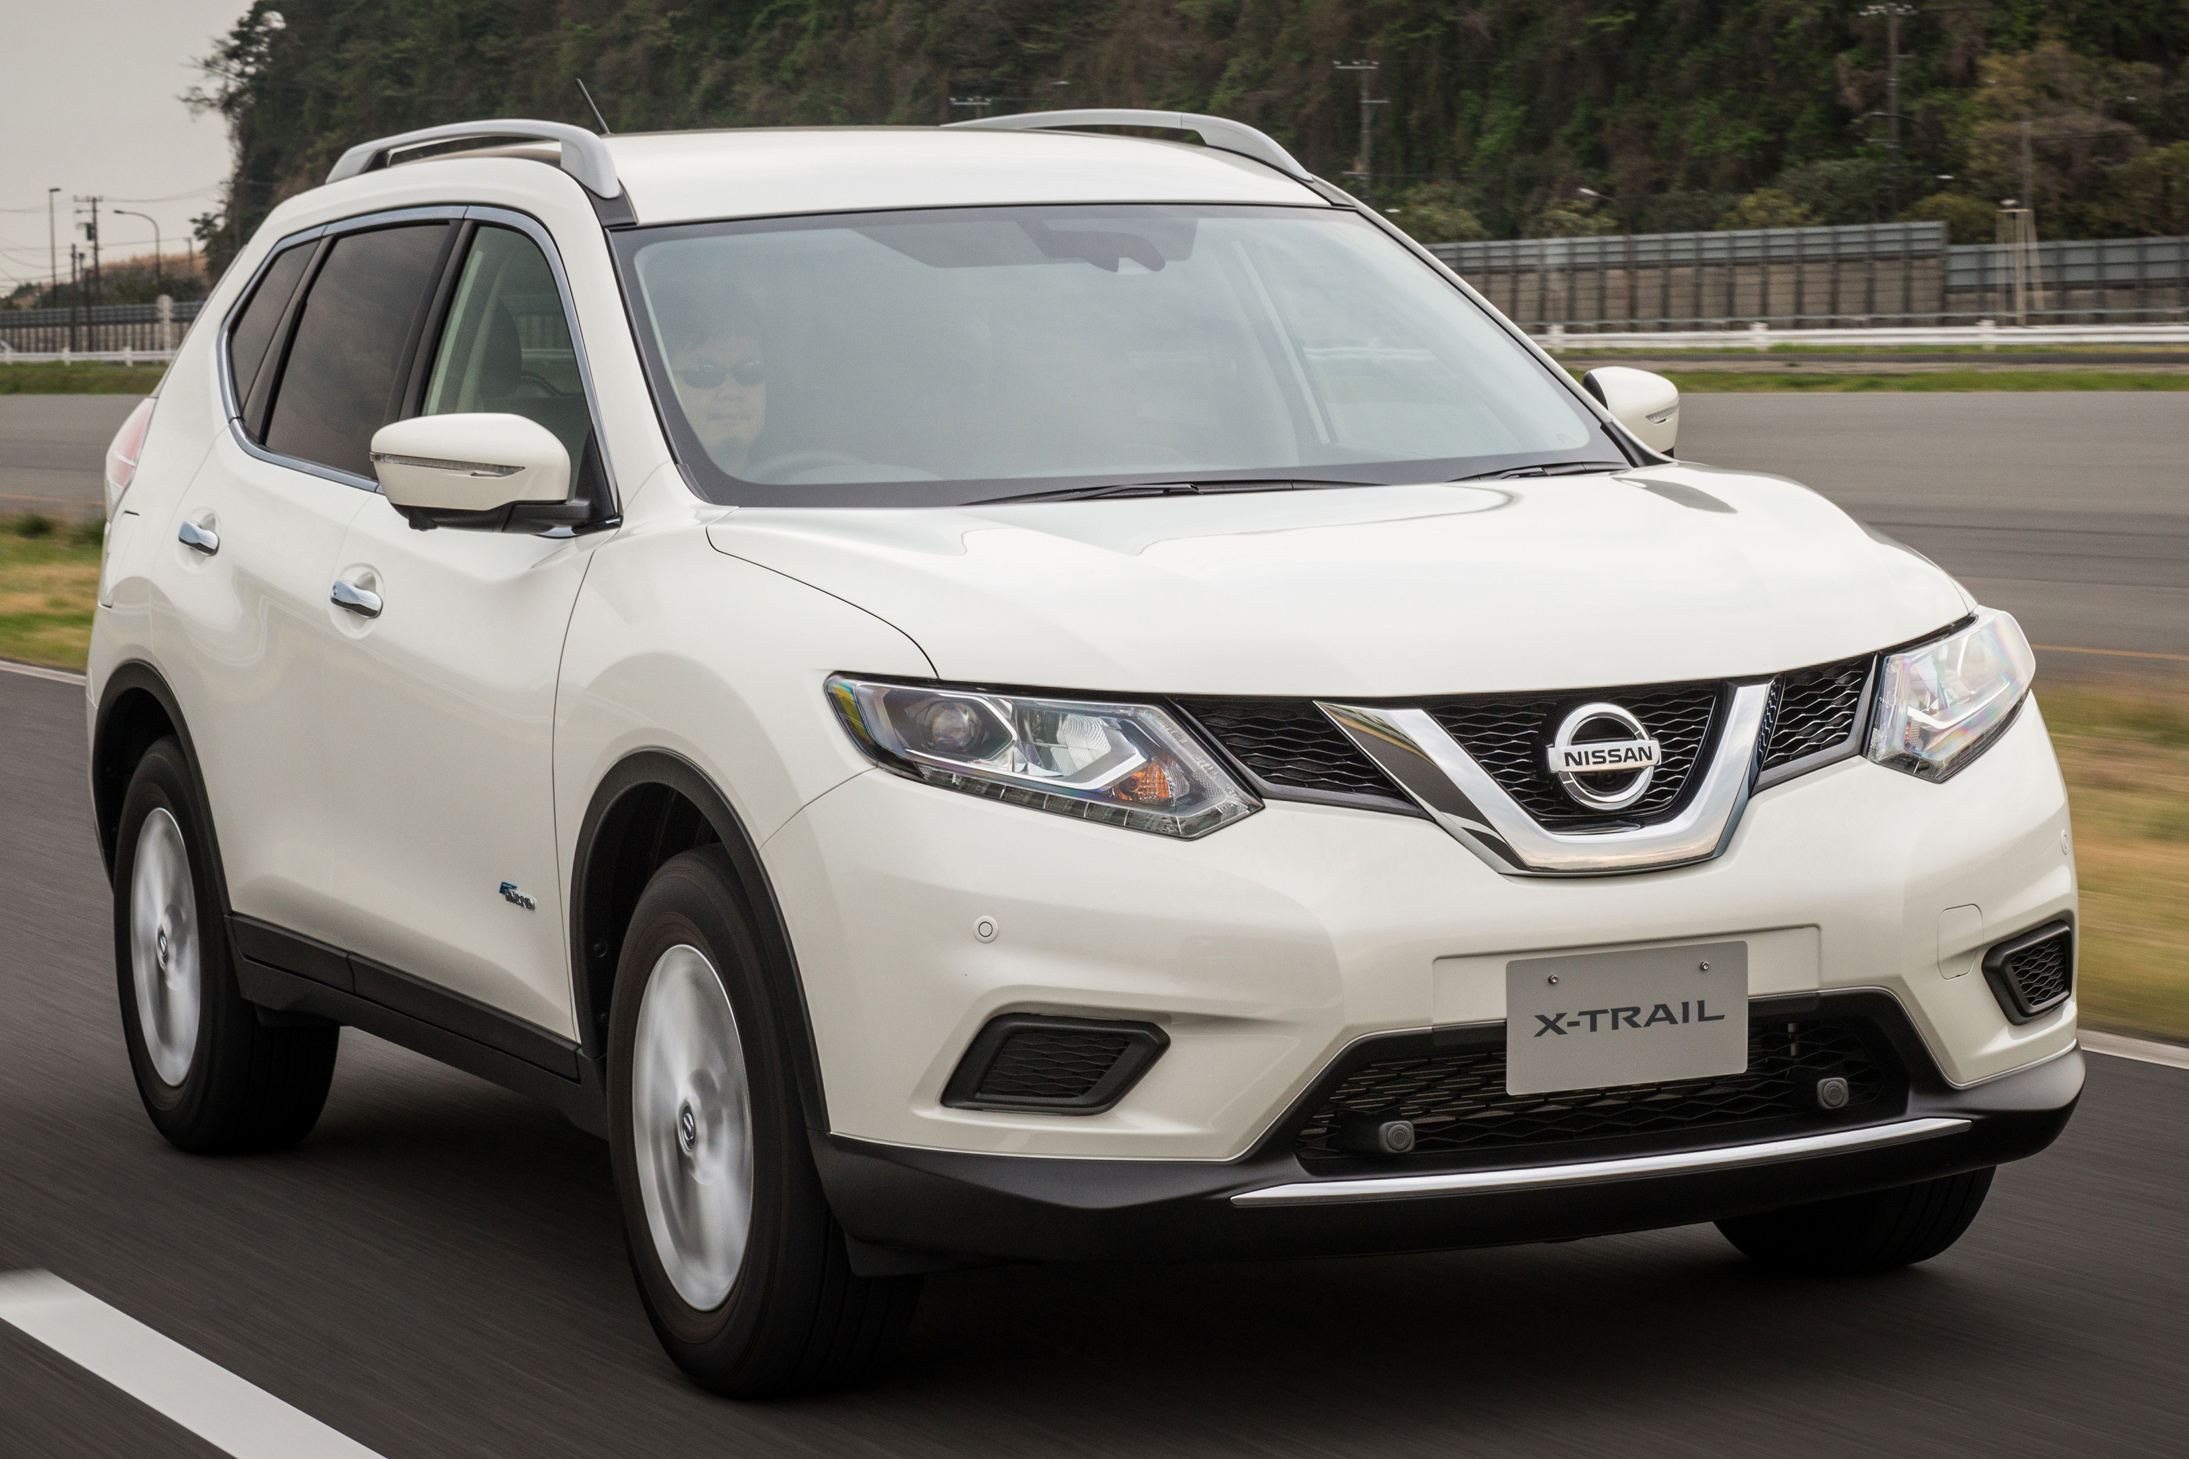 nissan x trail hybrid launched in thailand rm150k. Black Bedroom Furniture Sets. Home Design Ideas